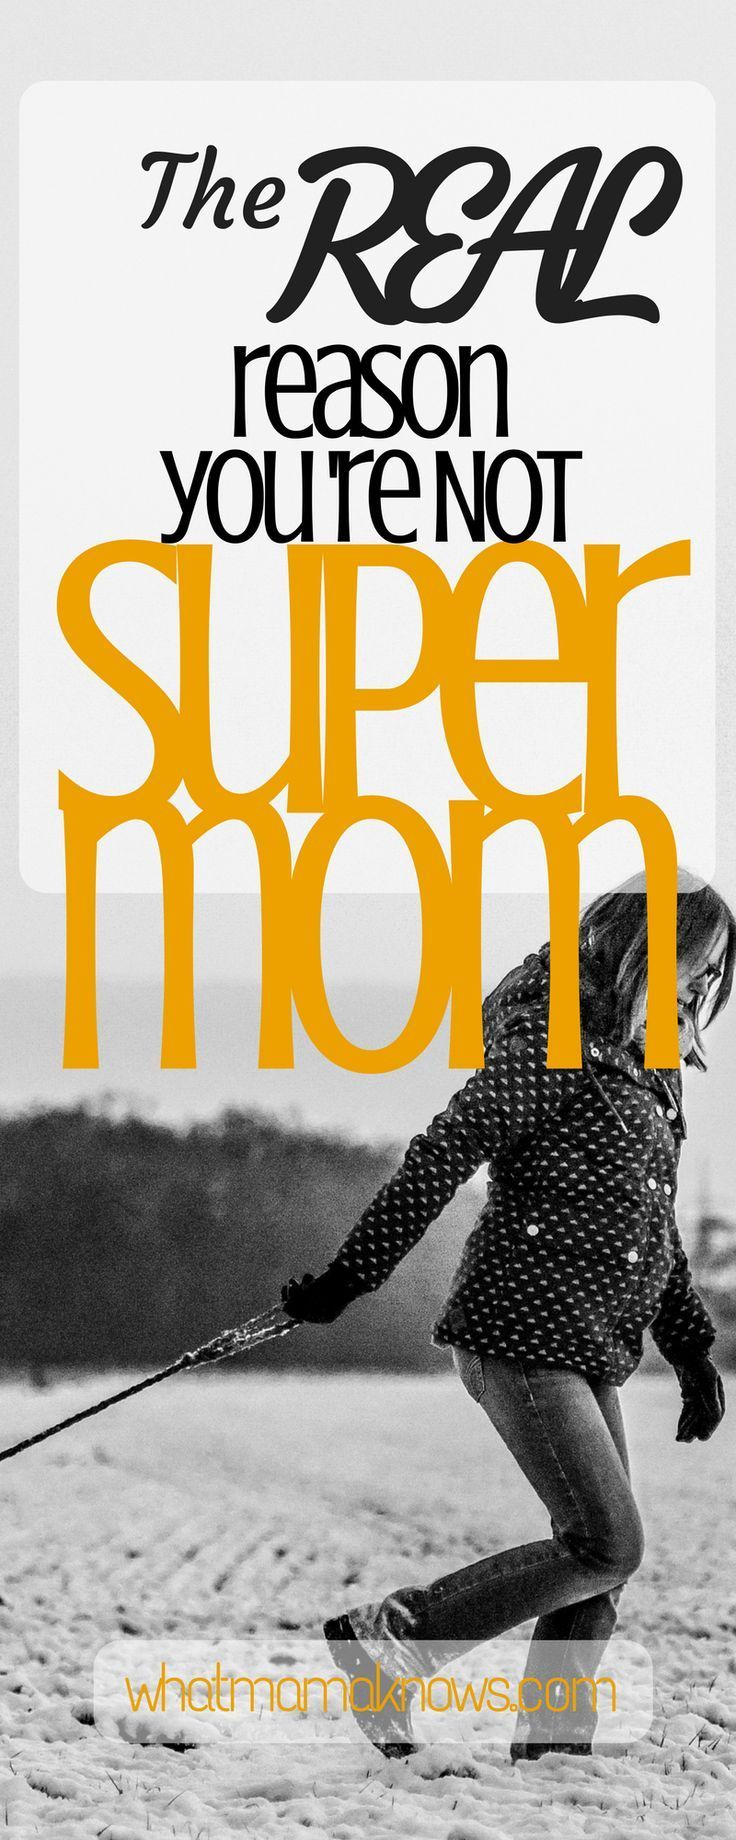 The real and surprising reason I am not supermom. What does the Bible say about sleep and self care? Does Scripture have something to say to busy and overwhelmed moms? Some Christian encouragement for moms from Psalm 127.